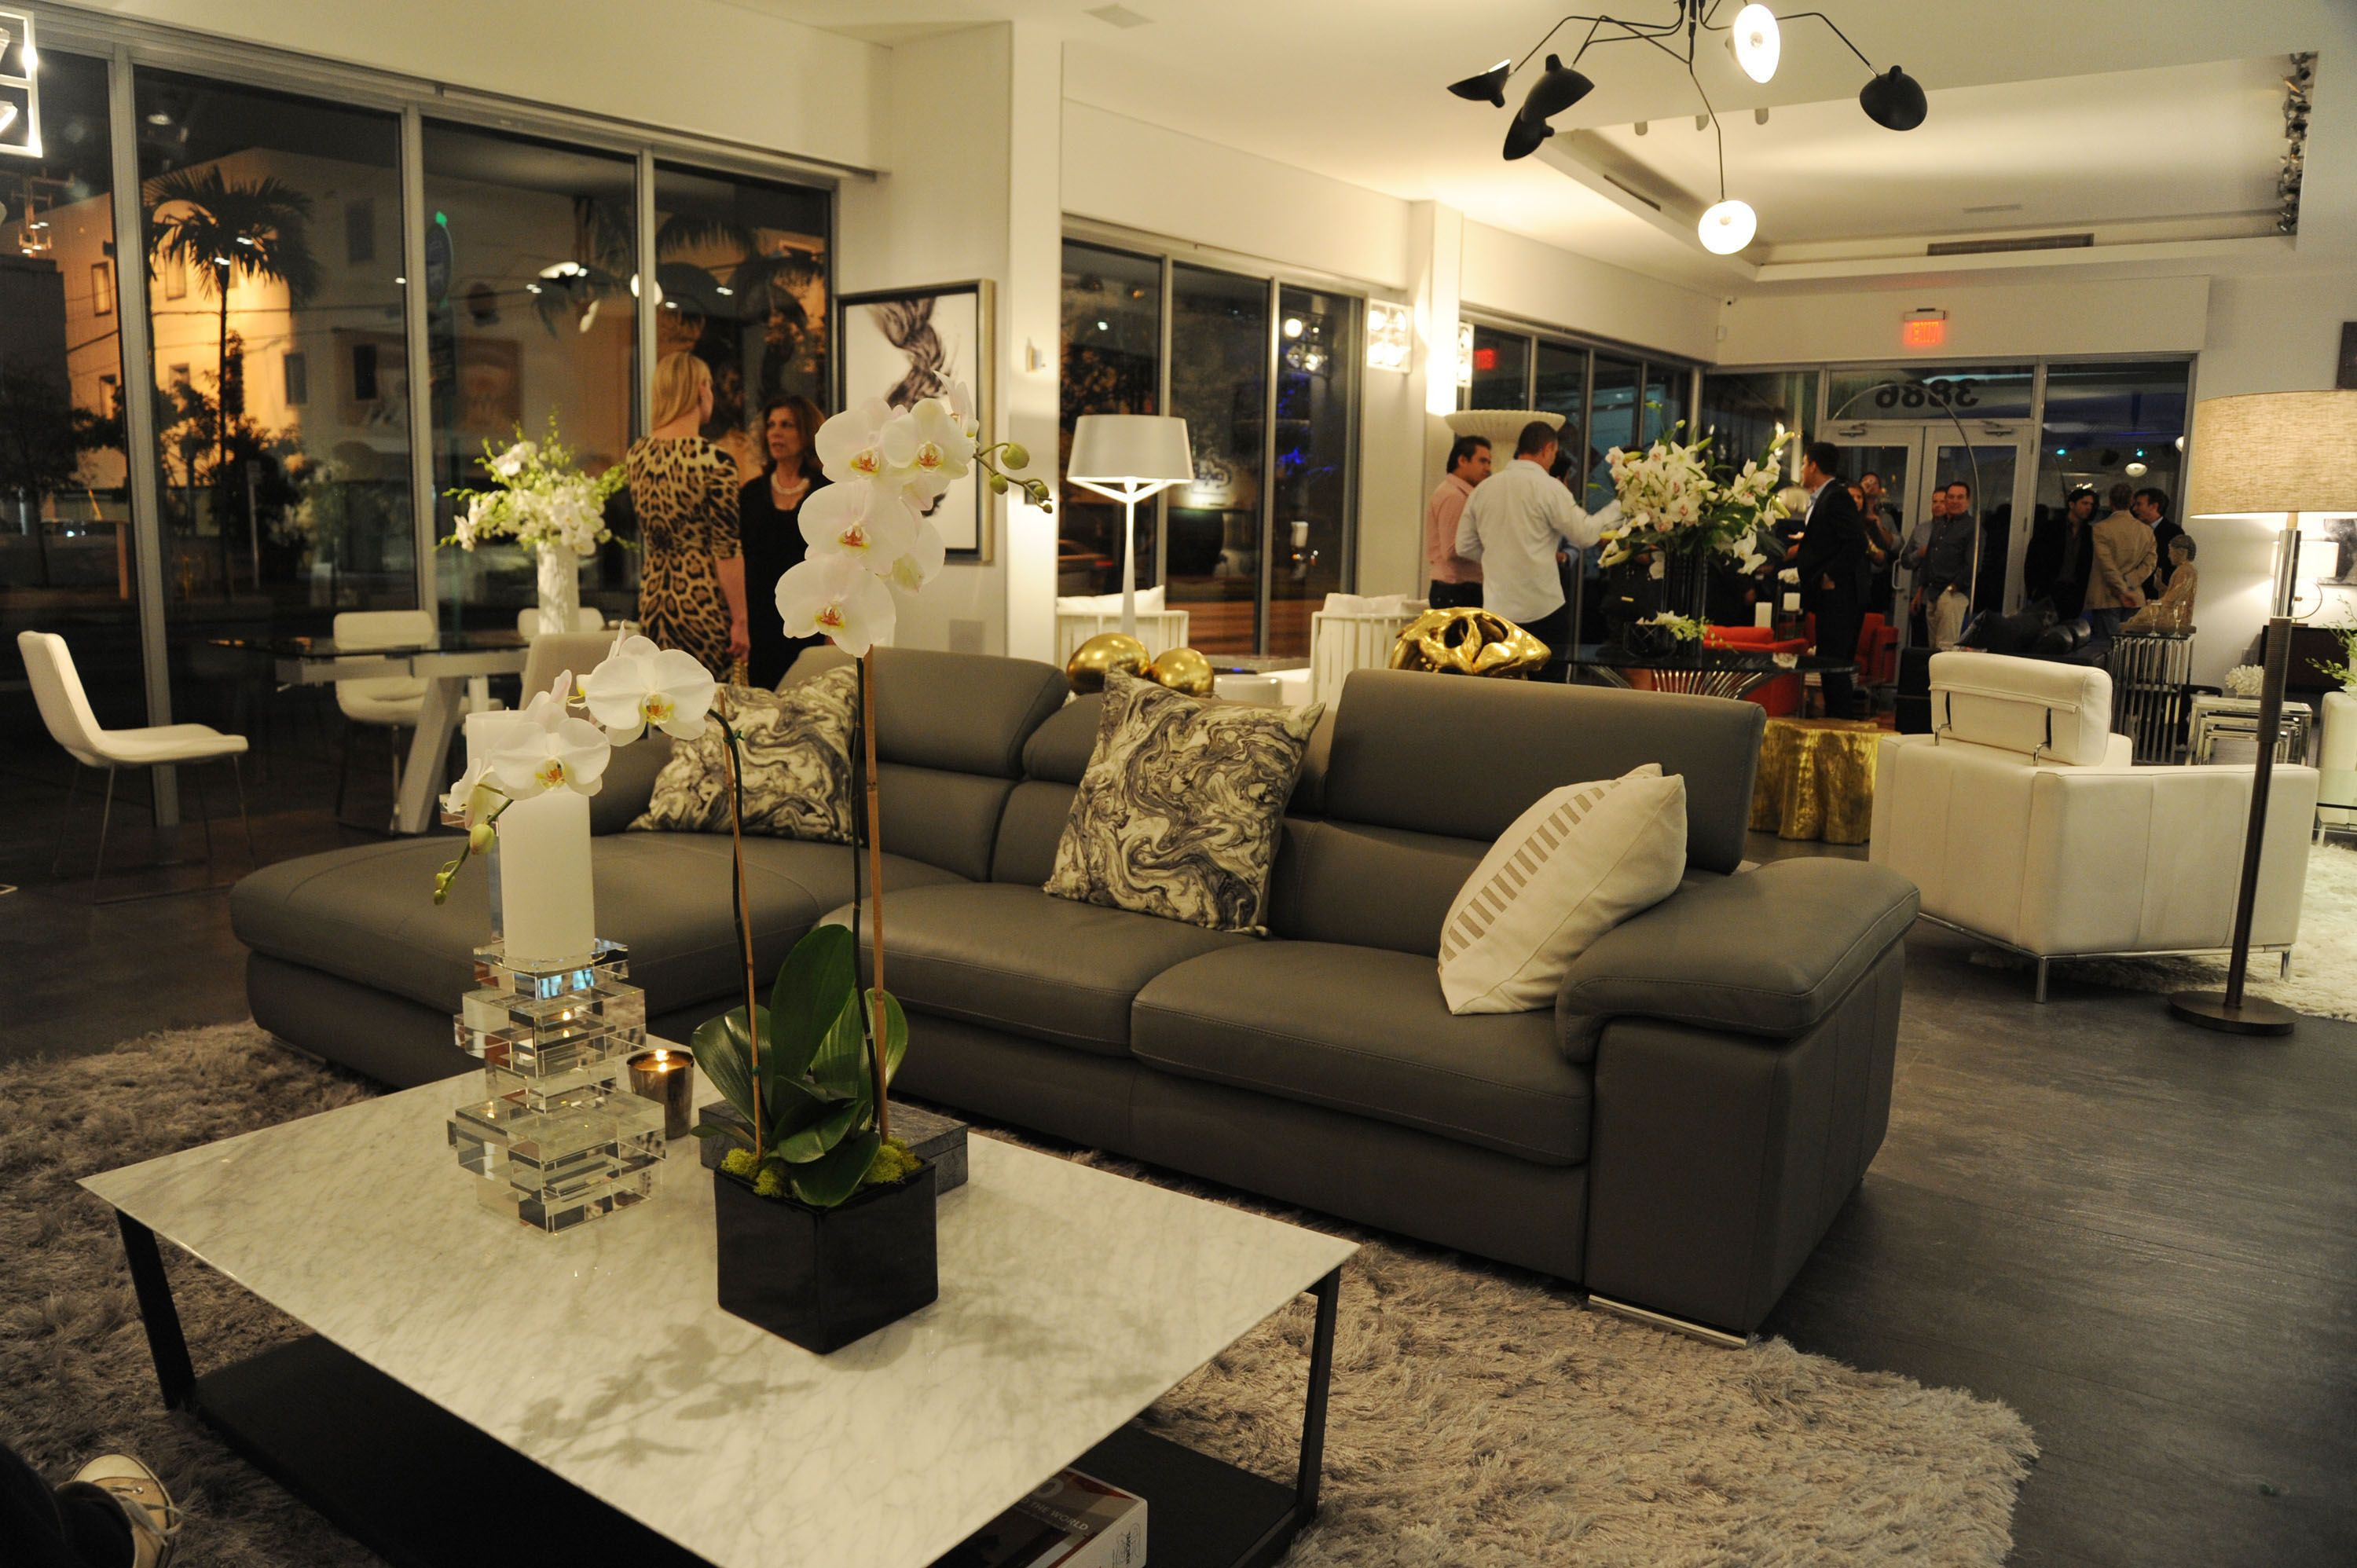 gardens starbucks rooted service miami new elegant furniture of opens stores in store